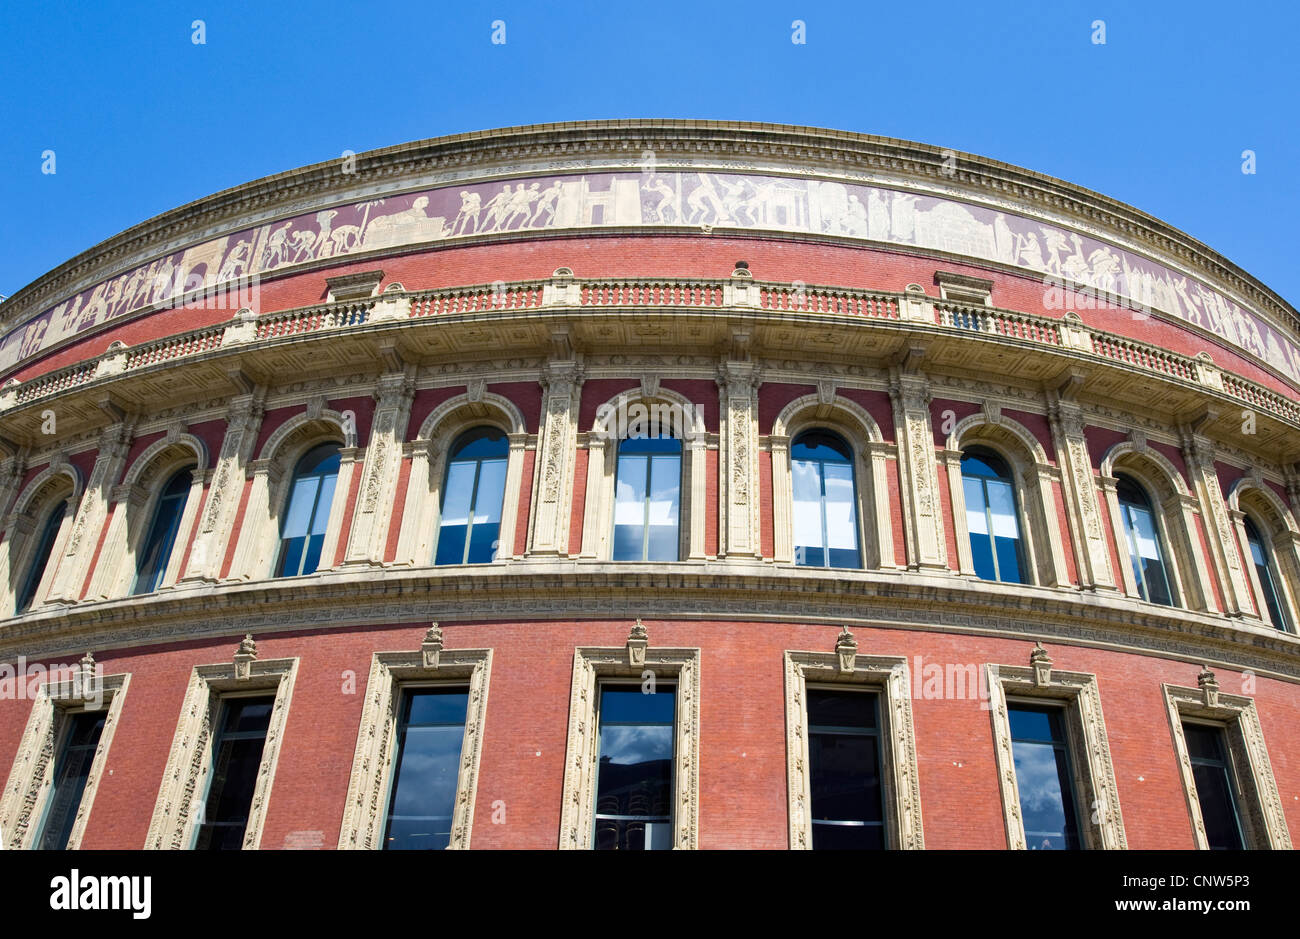 Europe Angleterre Londres, le Royal Albert Hall Banque D'Images